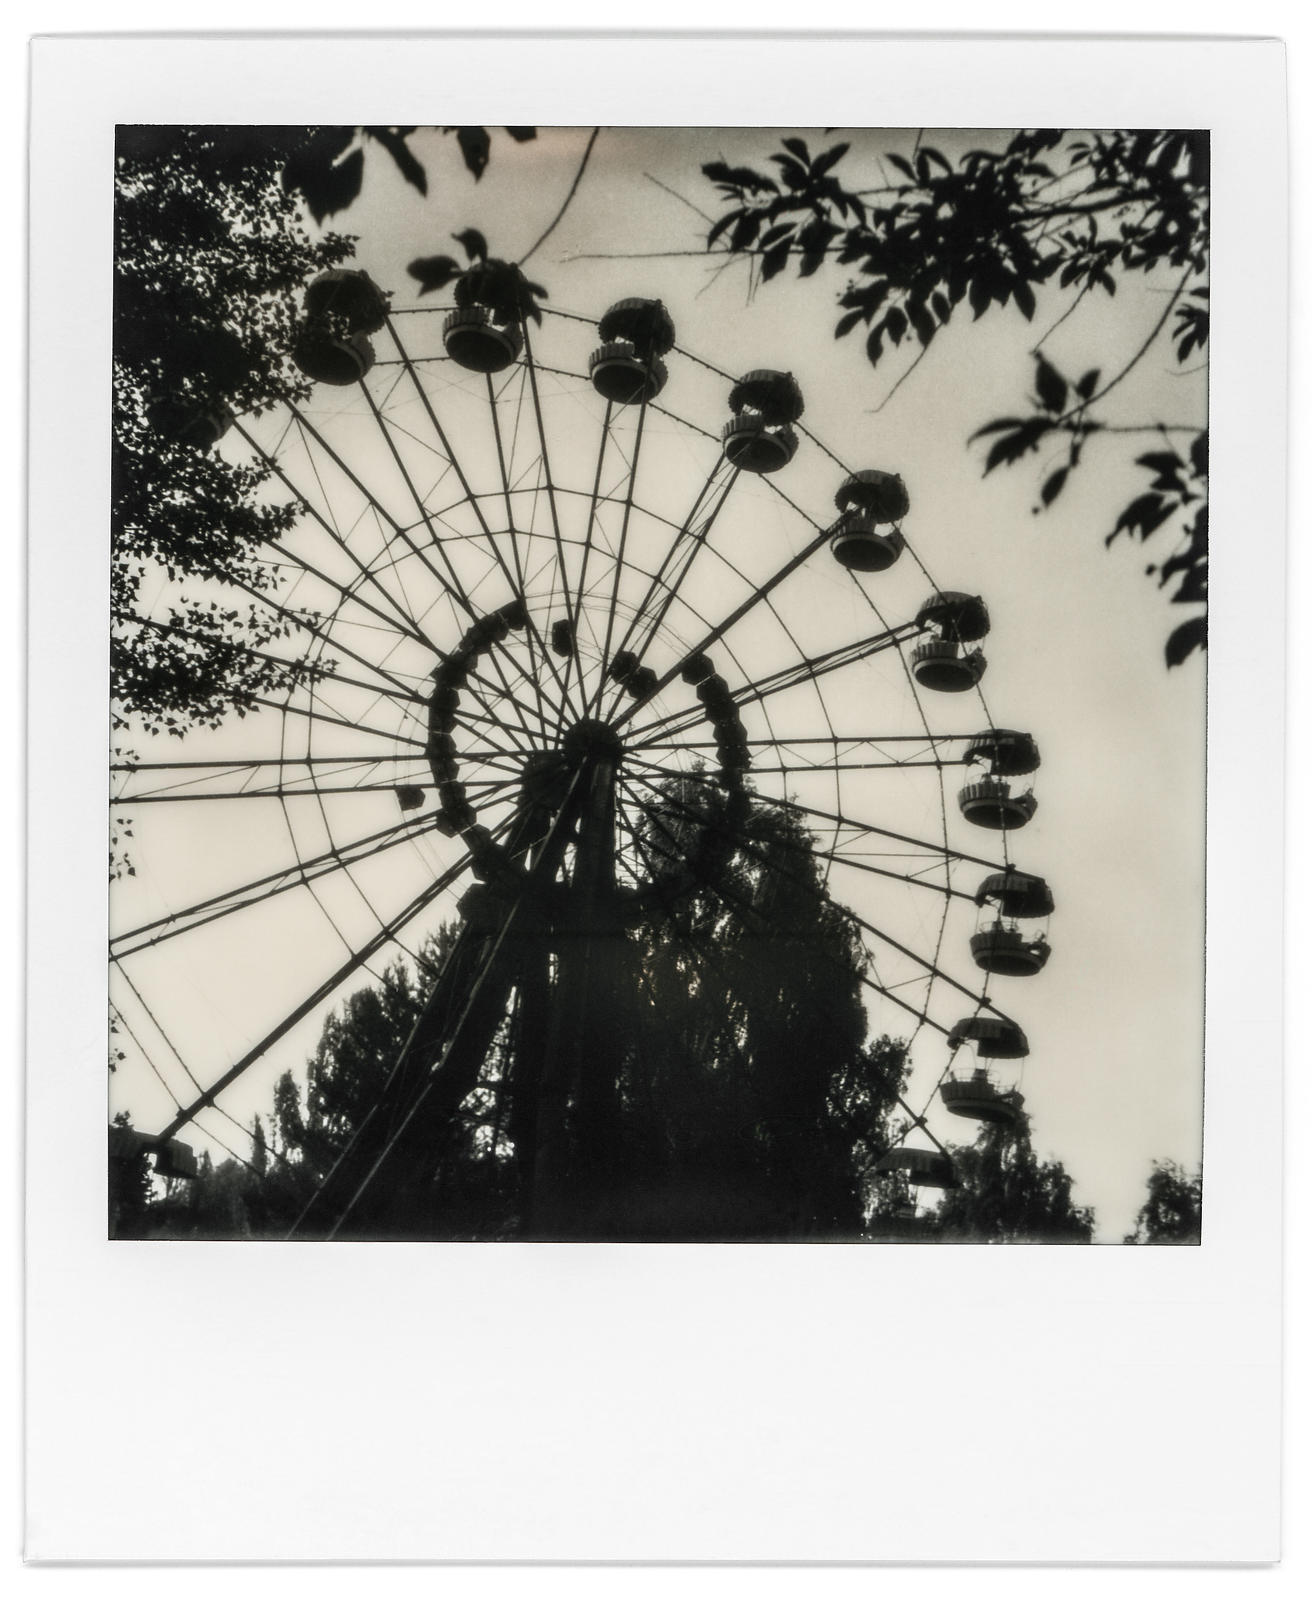 photo-polaroid-tchernobyl-chernobyl-24